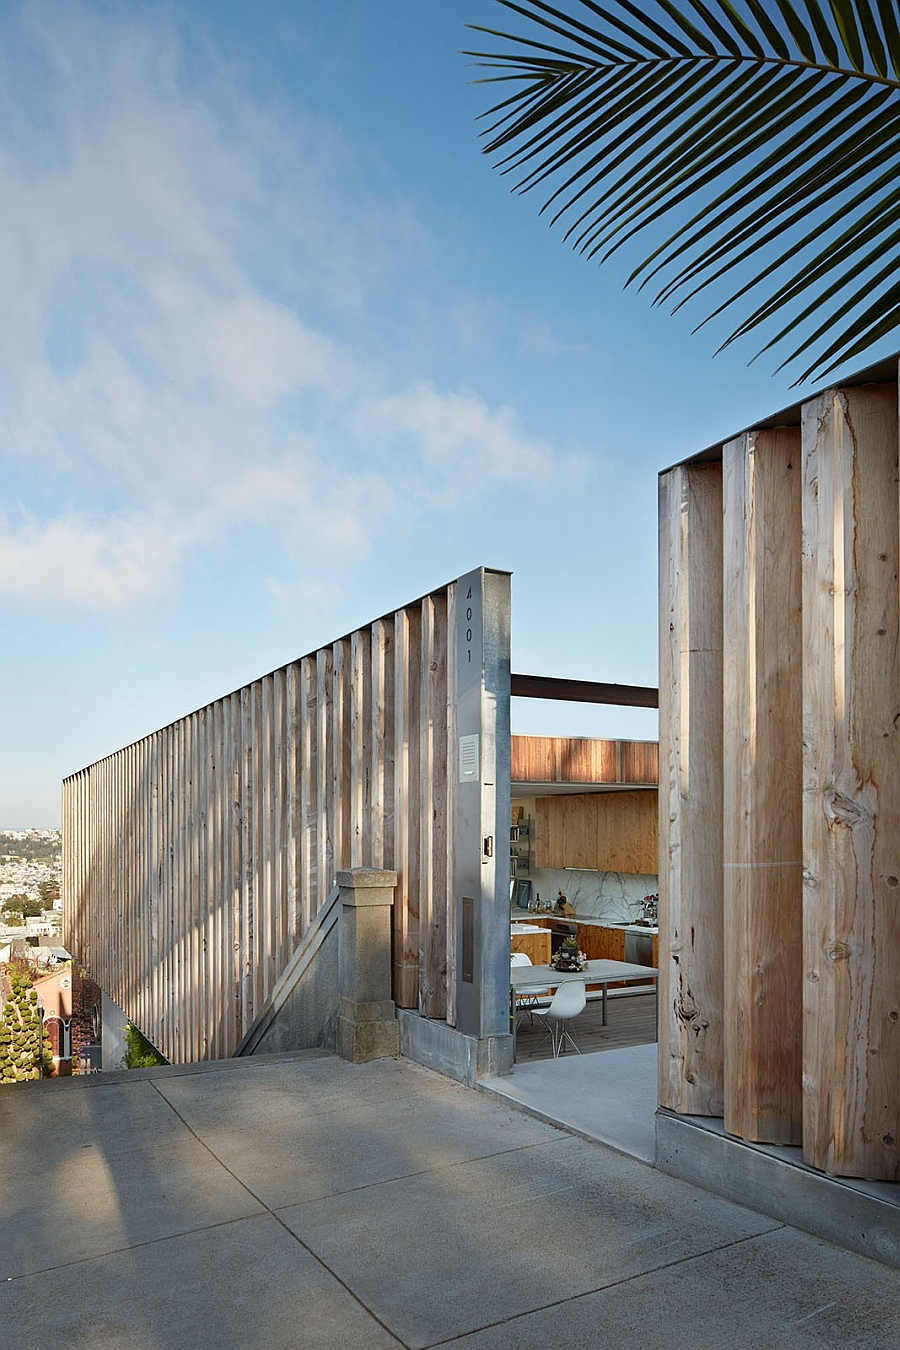 Terrace dining space and kitchen concealed by the giant solid wood louvers